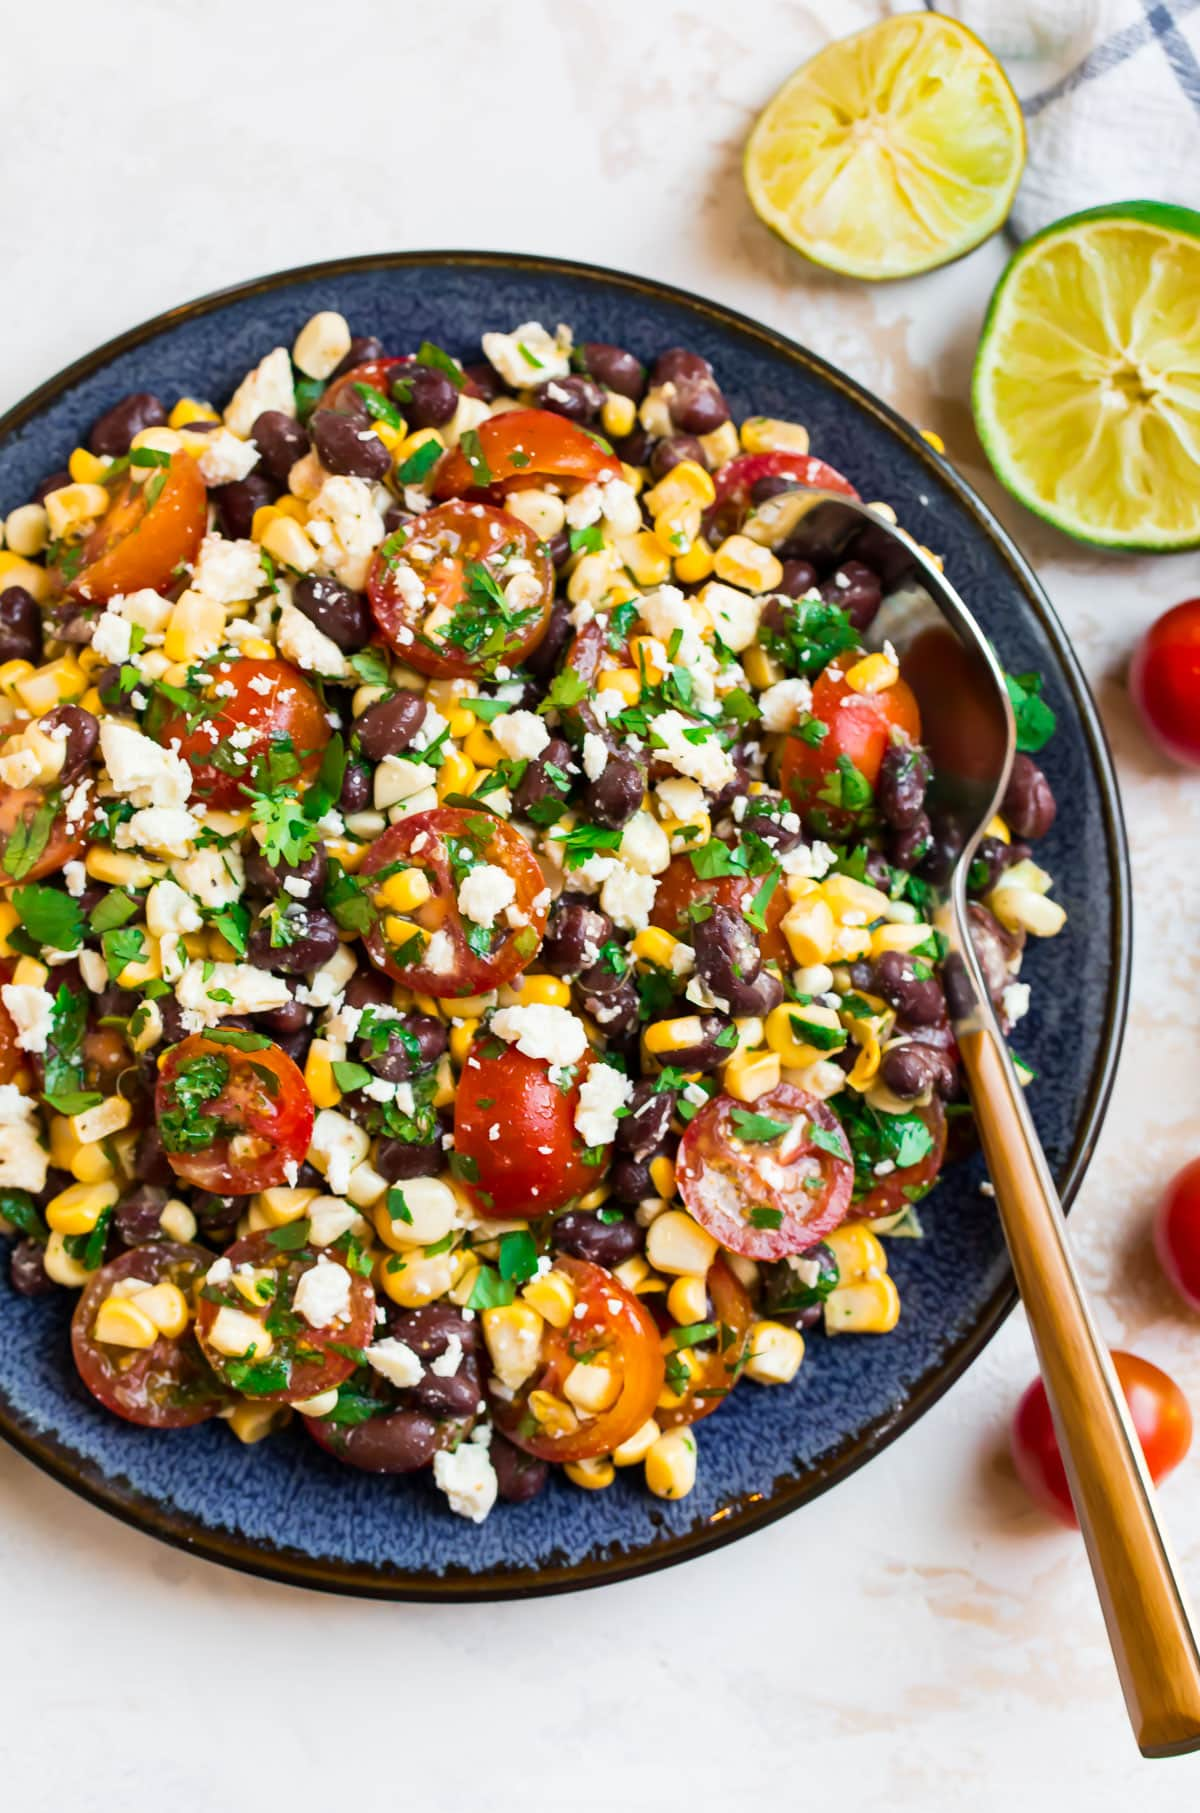 A plate of black bean and corn salad with feta